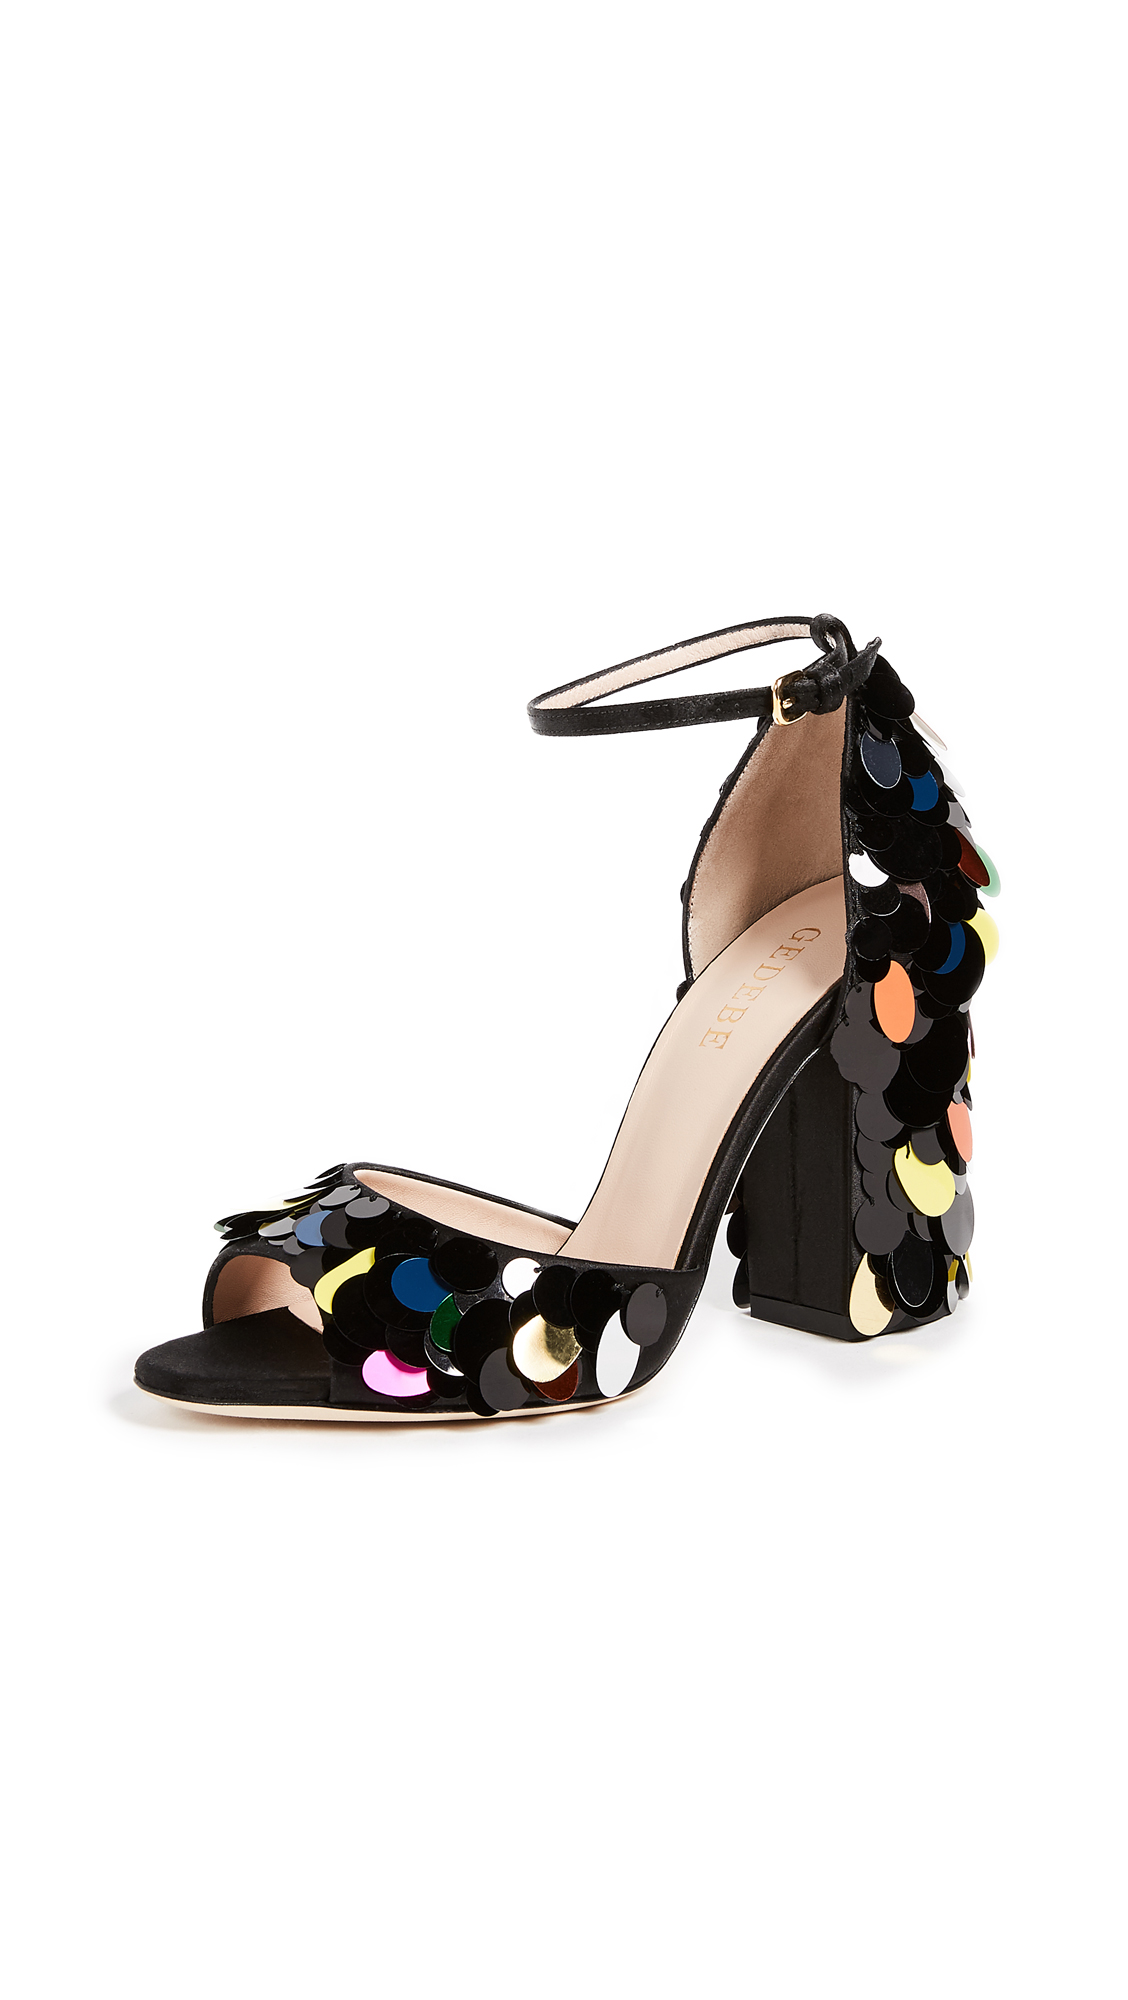 Gedebe Jenny Sandals - Black/Multi